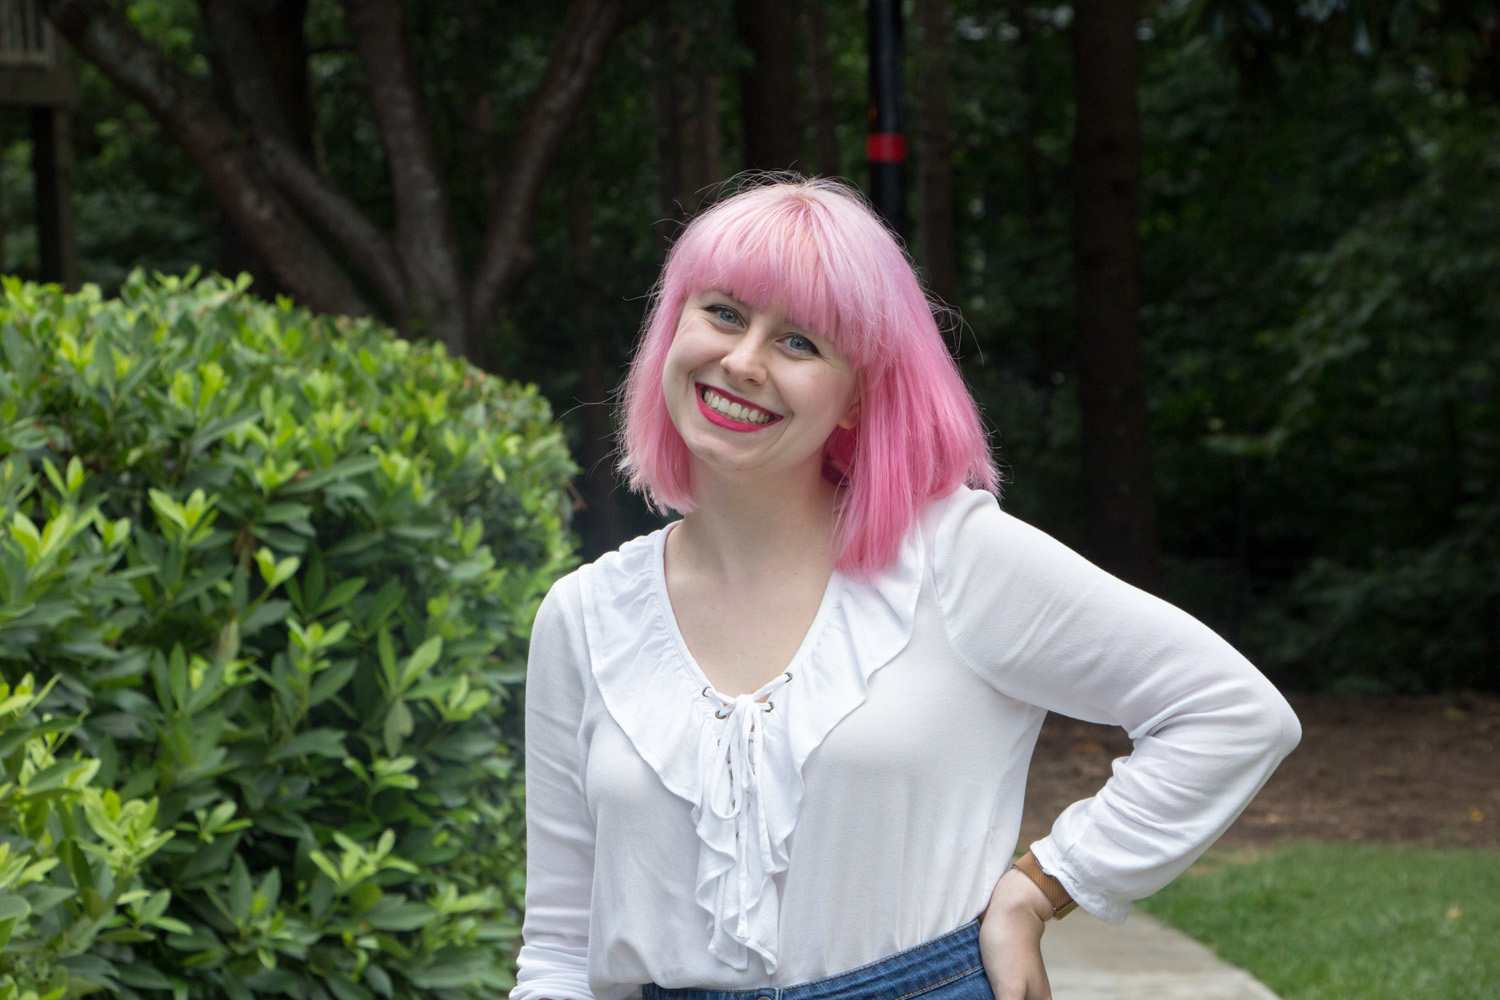 Pastel Pink Hair with Bangs and a White Shirt